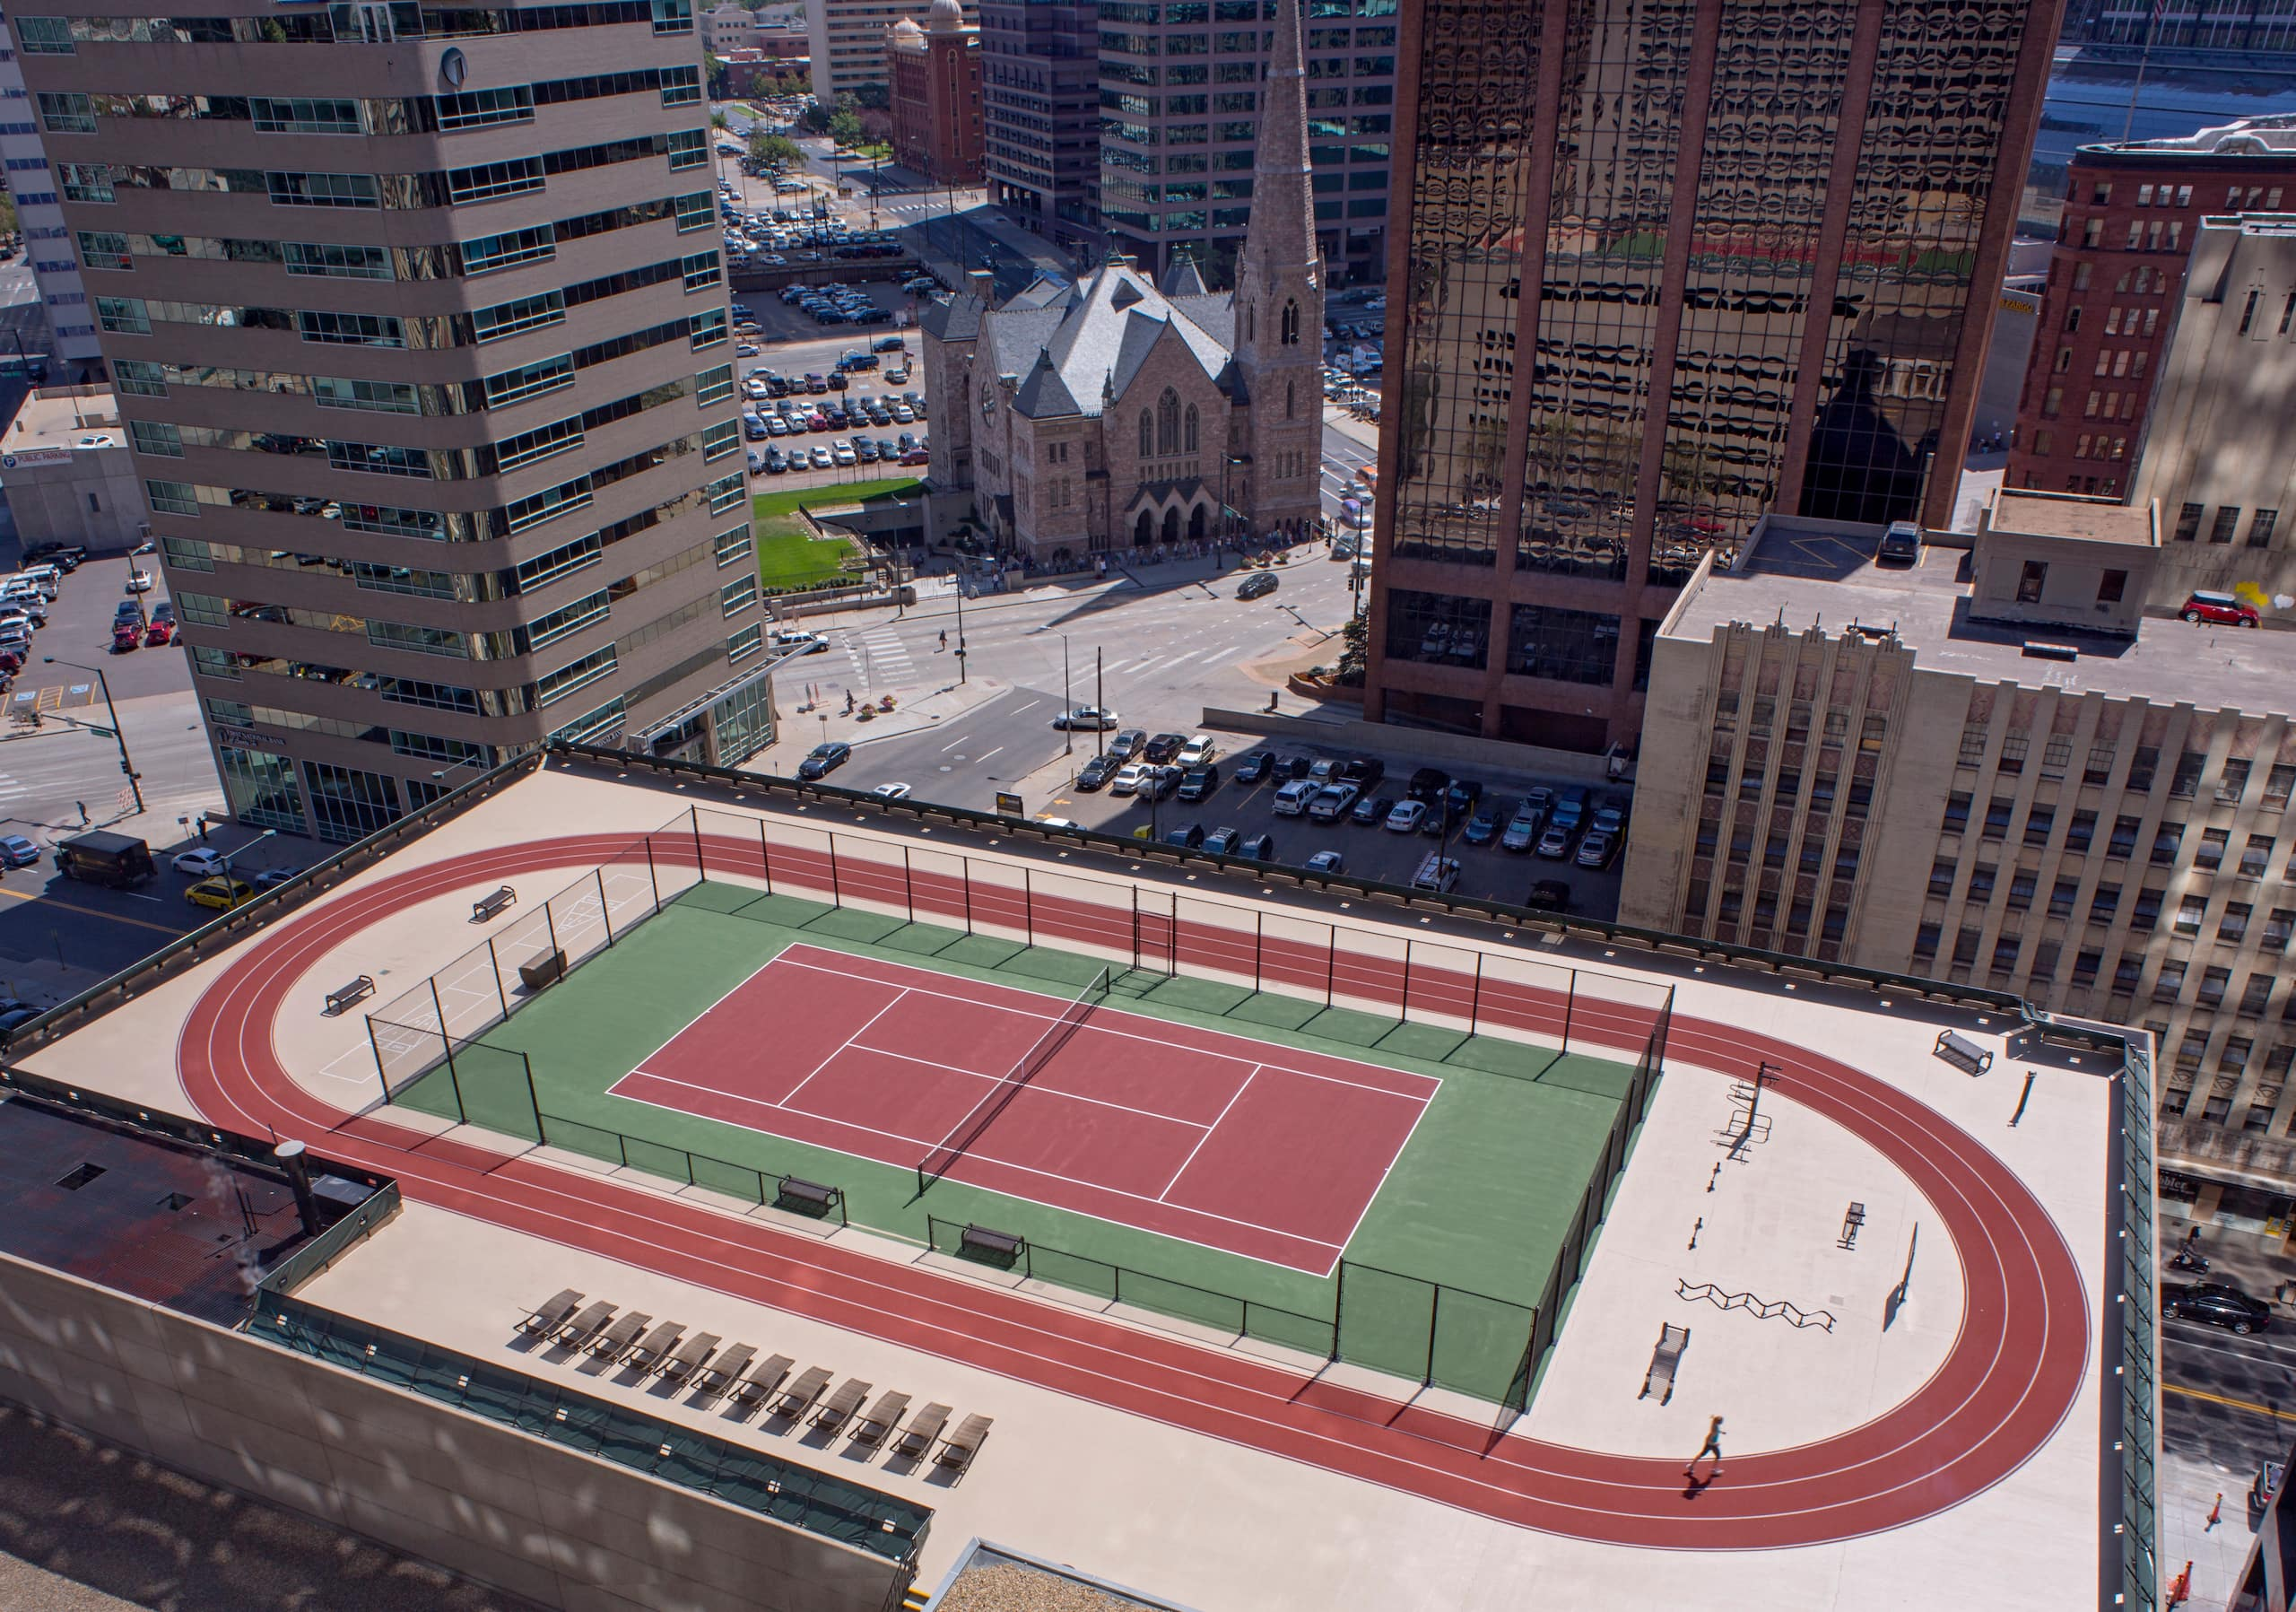 Stylish Downtown Denver Hotel Grand Hyatt Tennis Court Diagram With Measurements Pictures To Pin On Pinterest